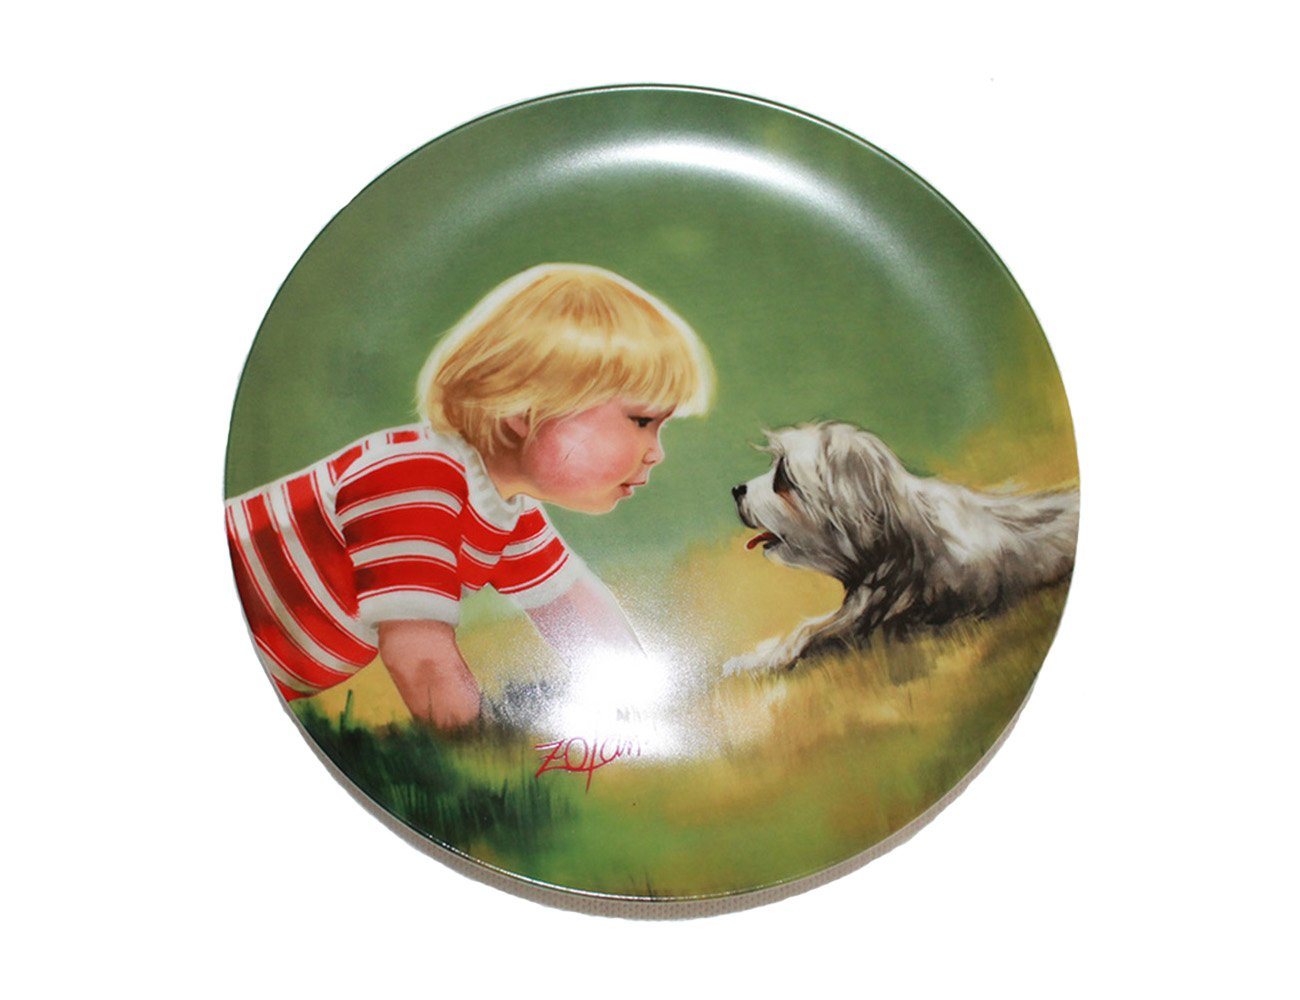 """Making Friends by Donald Zolan 7 1/2"""""""" Collectible Plate With Certificate and Booklet"""